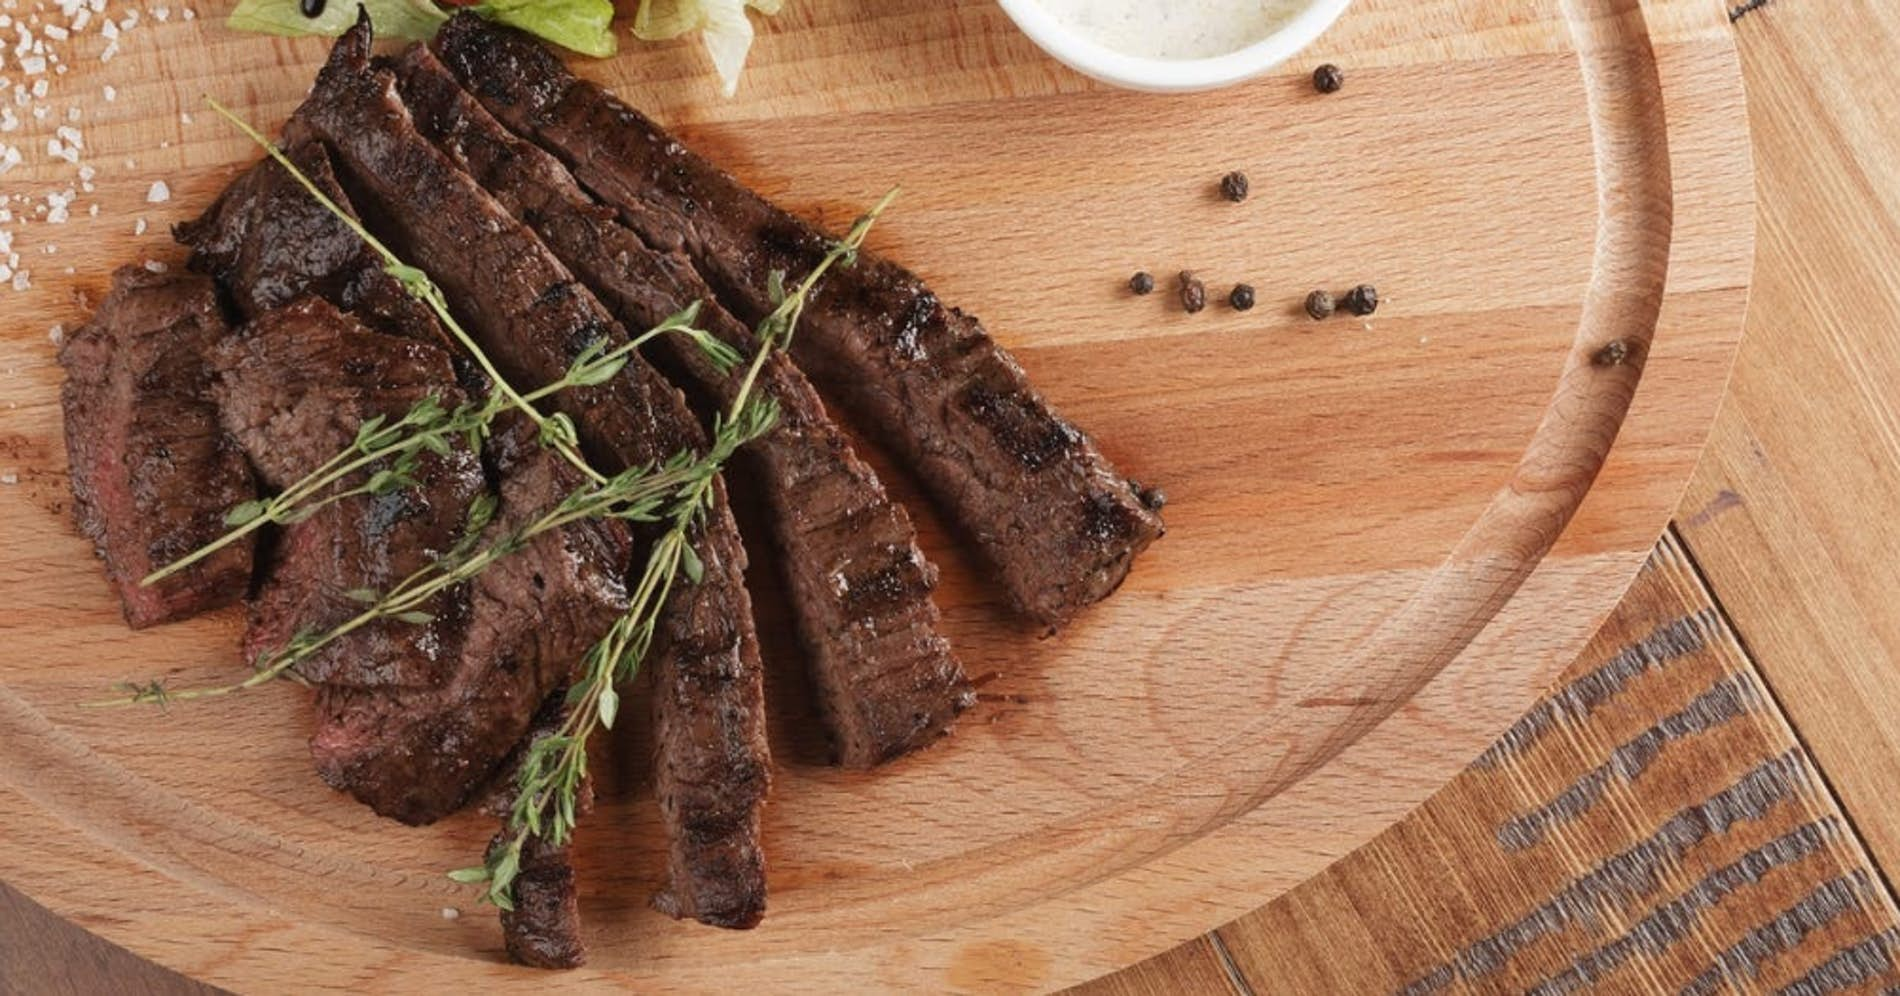 Pan-Seared Skirt Steak With Garlic Thyme Butter